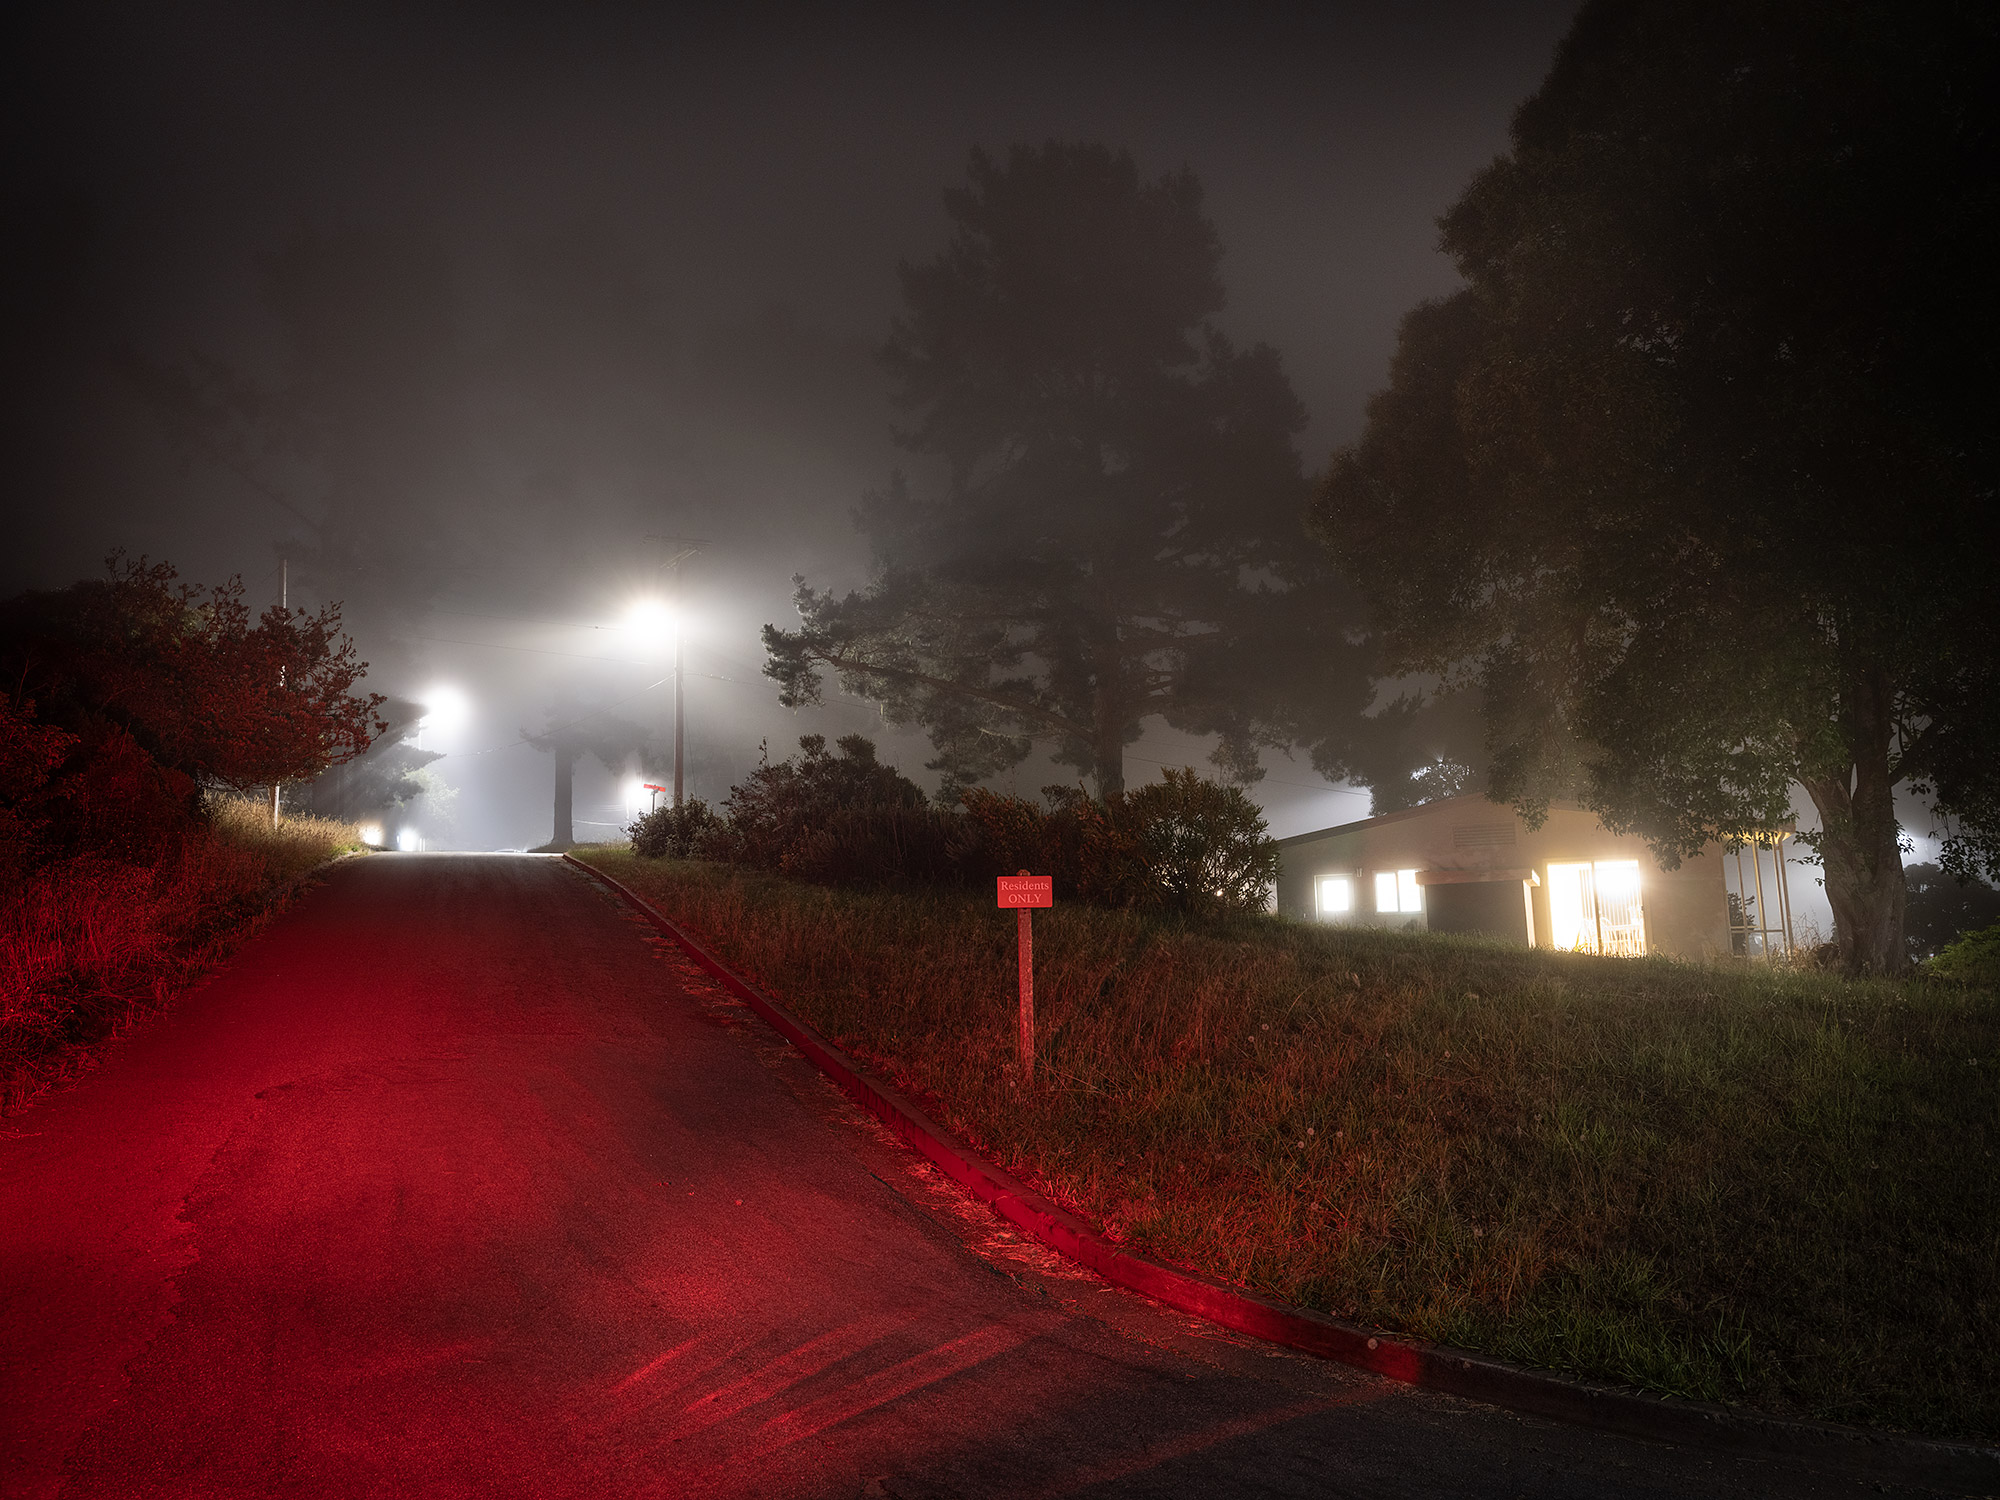 Image of military housing at night with red lights and fog.